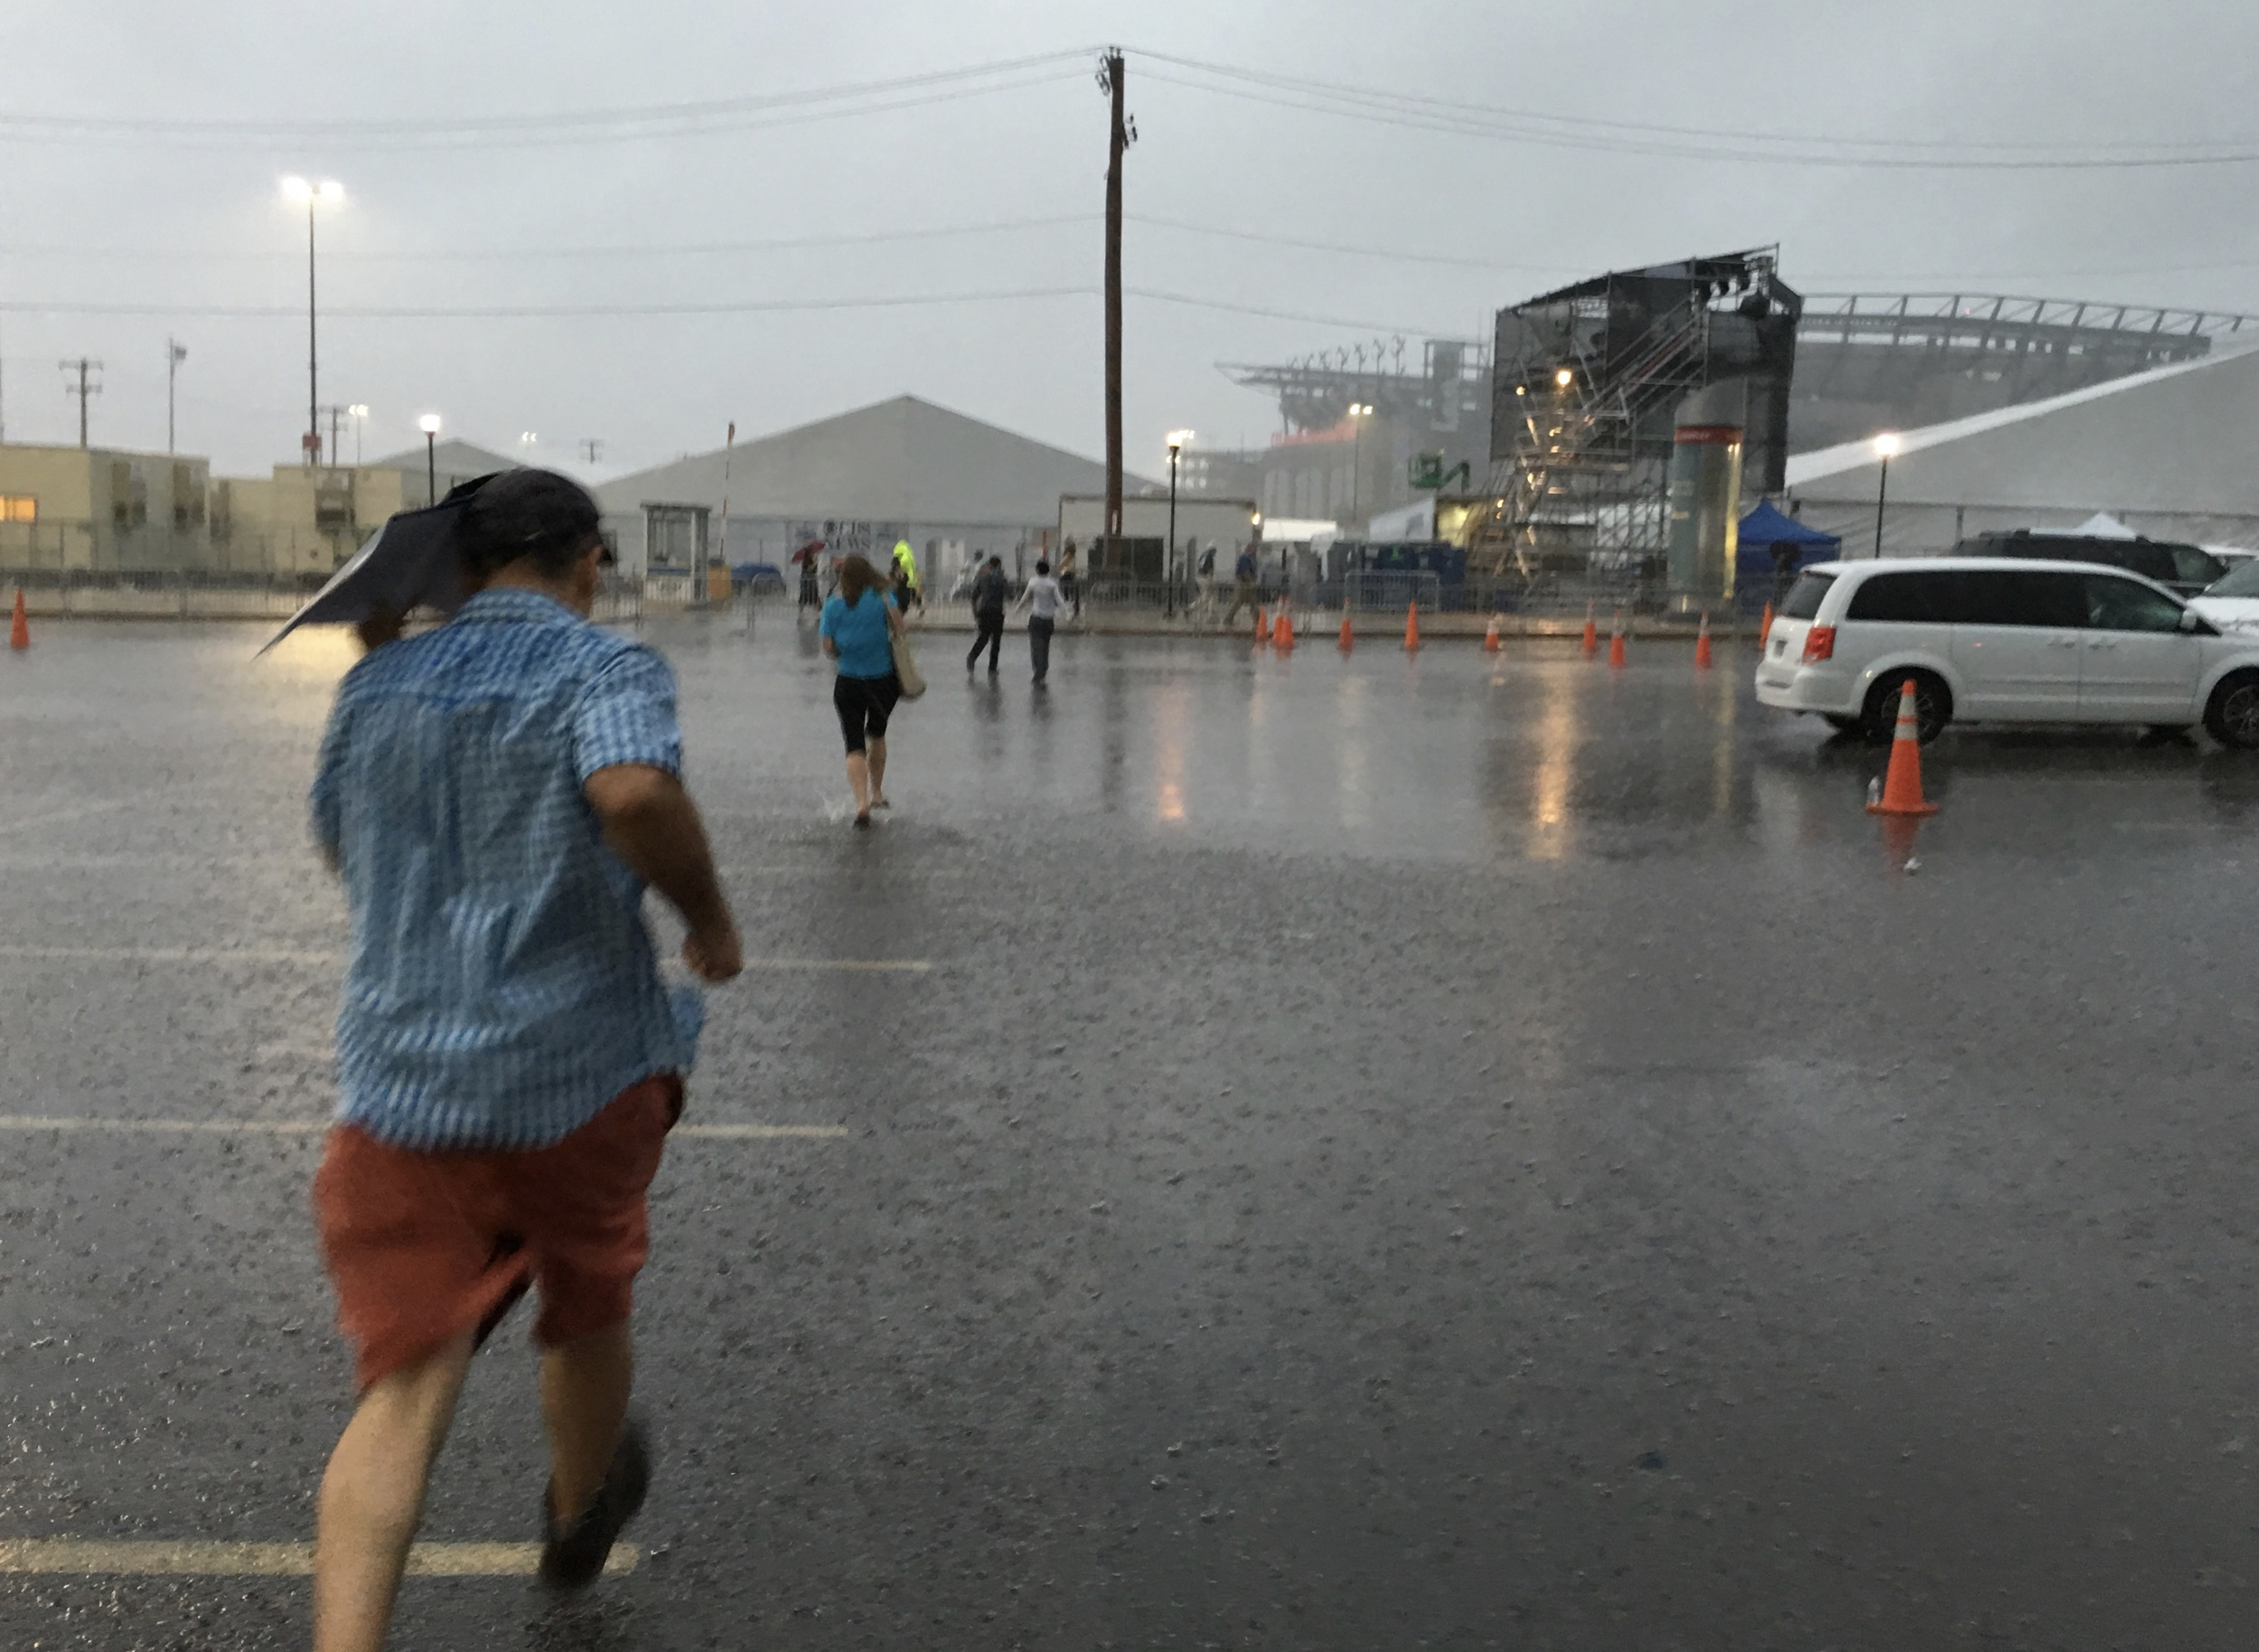 Racing through flash flood from the bus to the security tent at the DNC. iPhone 6s+ ISO 40, f/2.2, 1/15. Out in a jiffy, I didn't mind that it got wet. It was just fine. I think the Schneider iPro case helped.